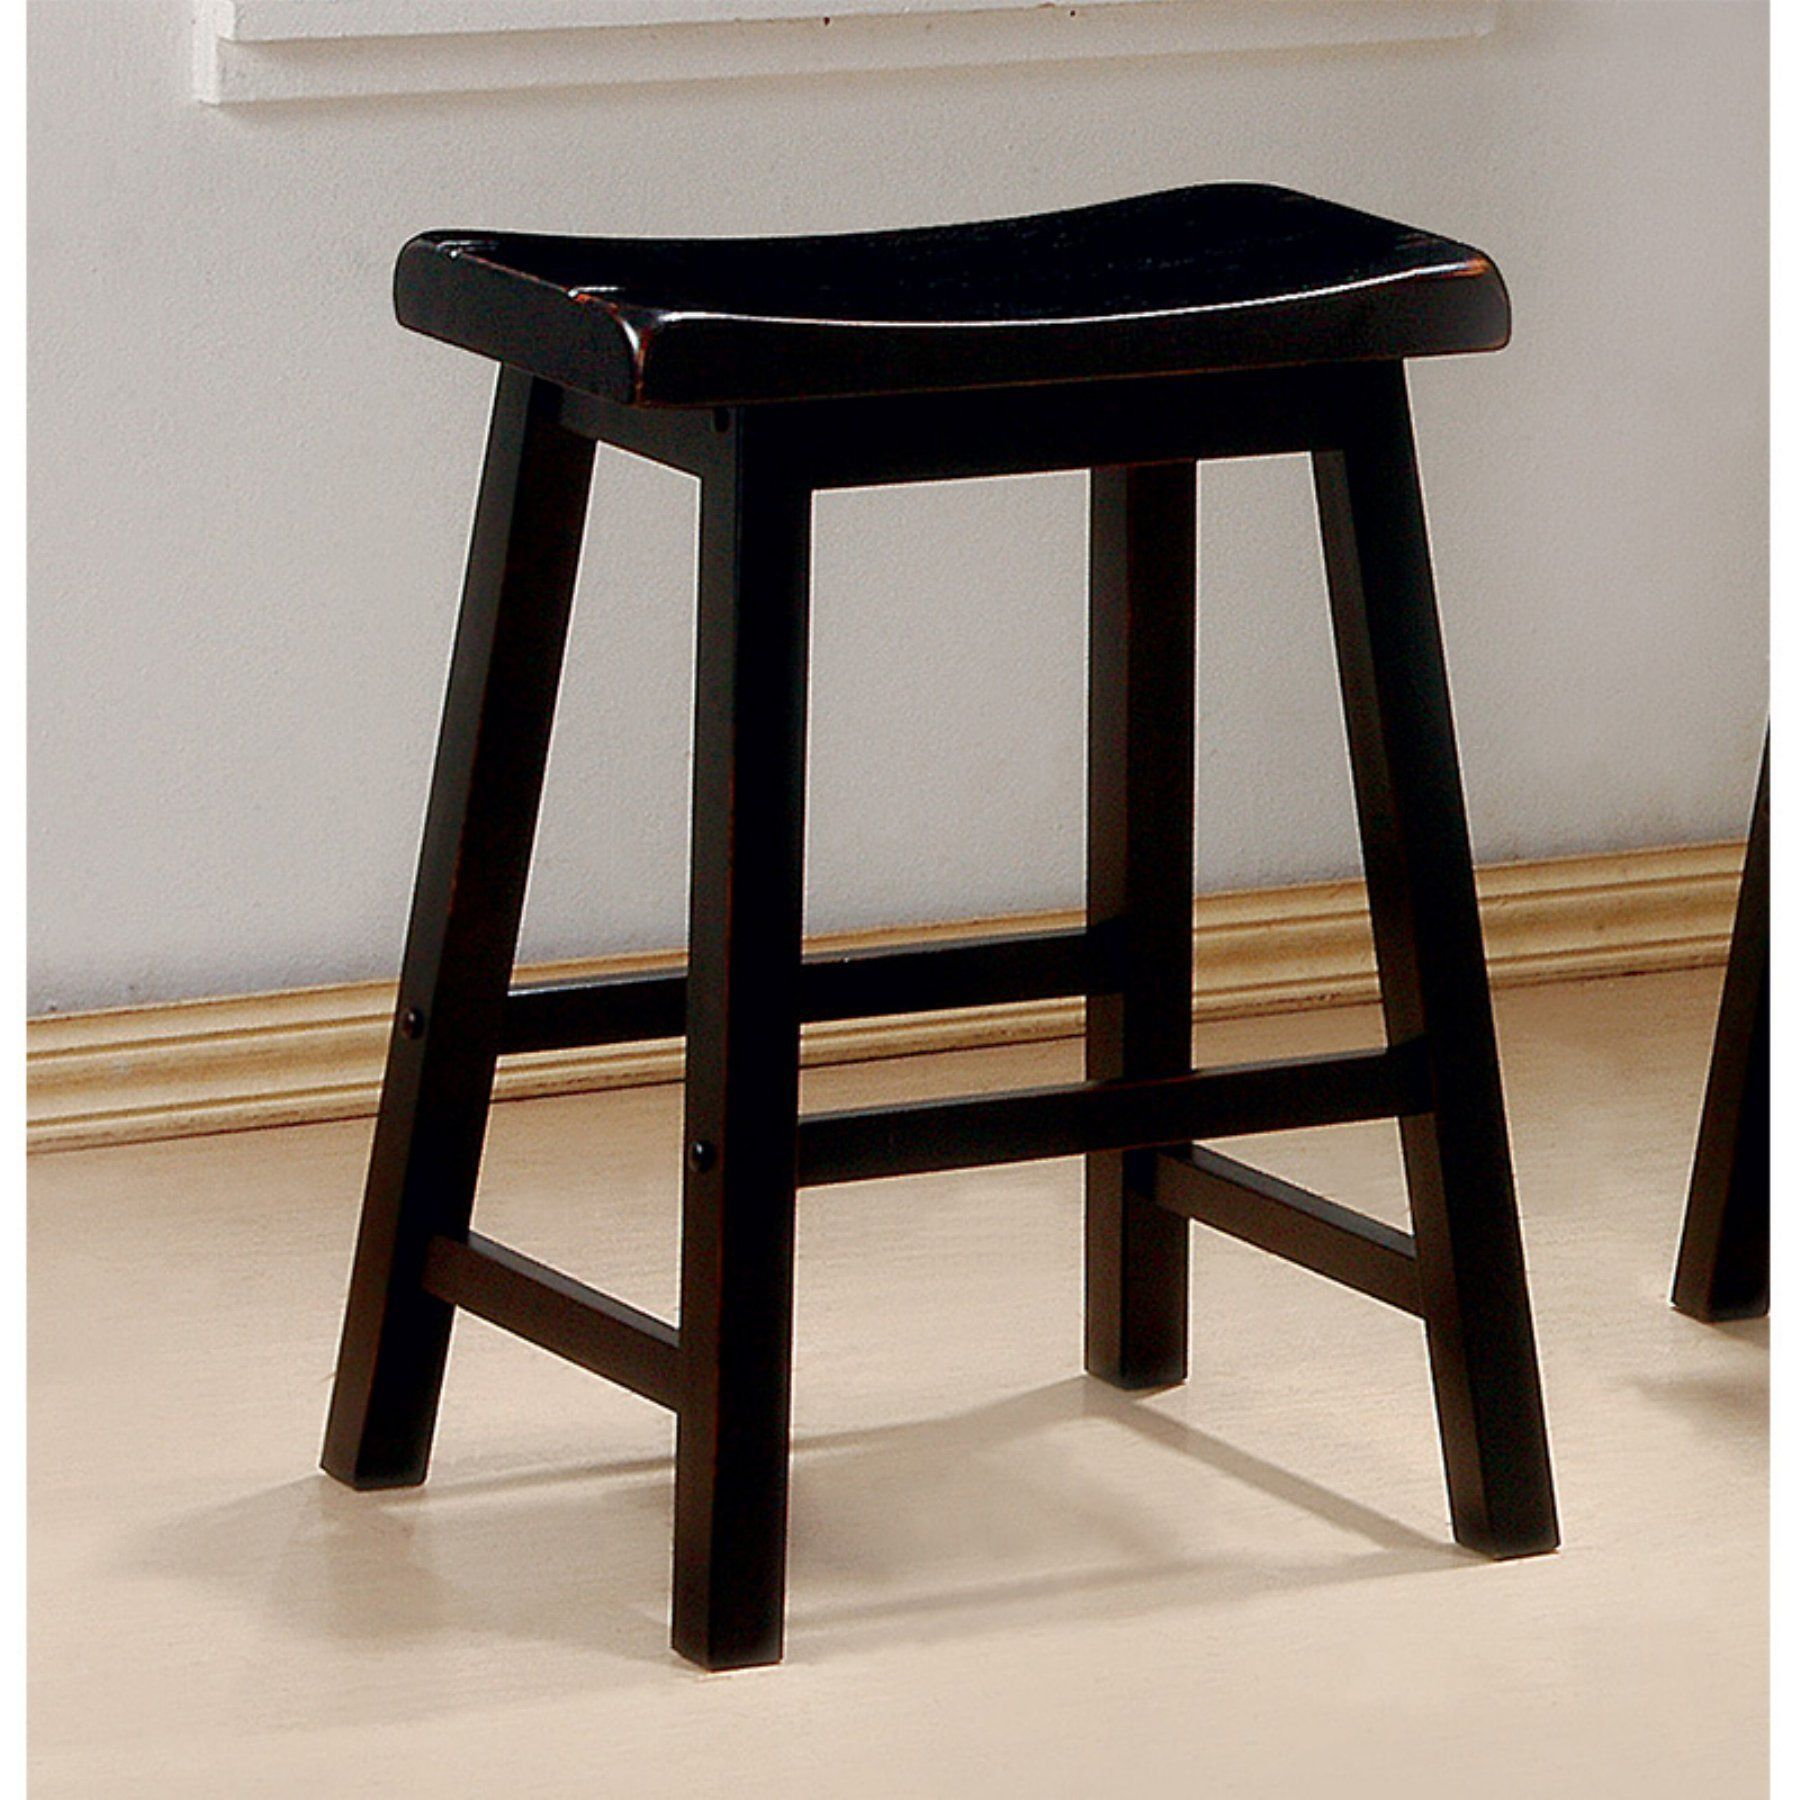 Winsome Wood Satori Saddle Seat Stool 24 Inch Multiple Finishes